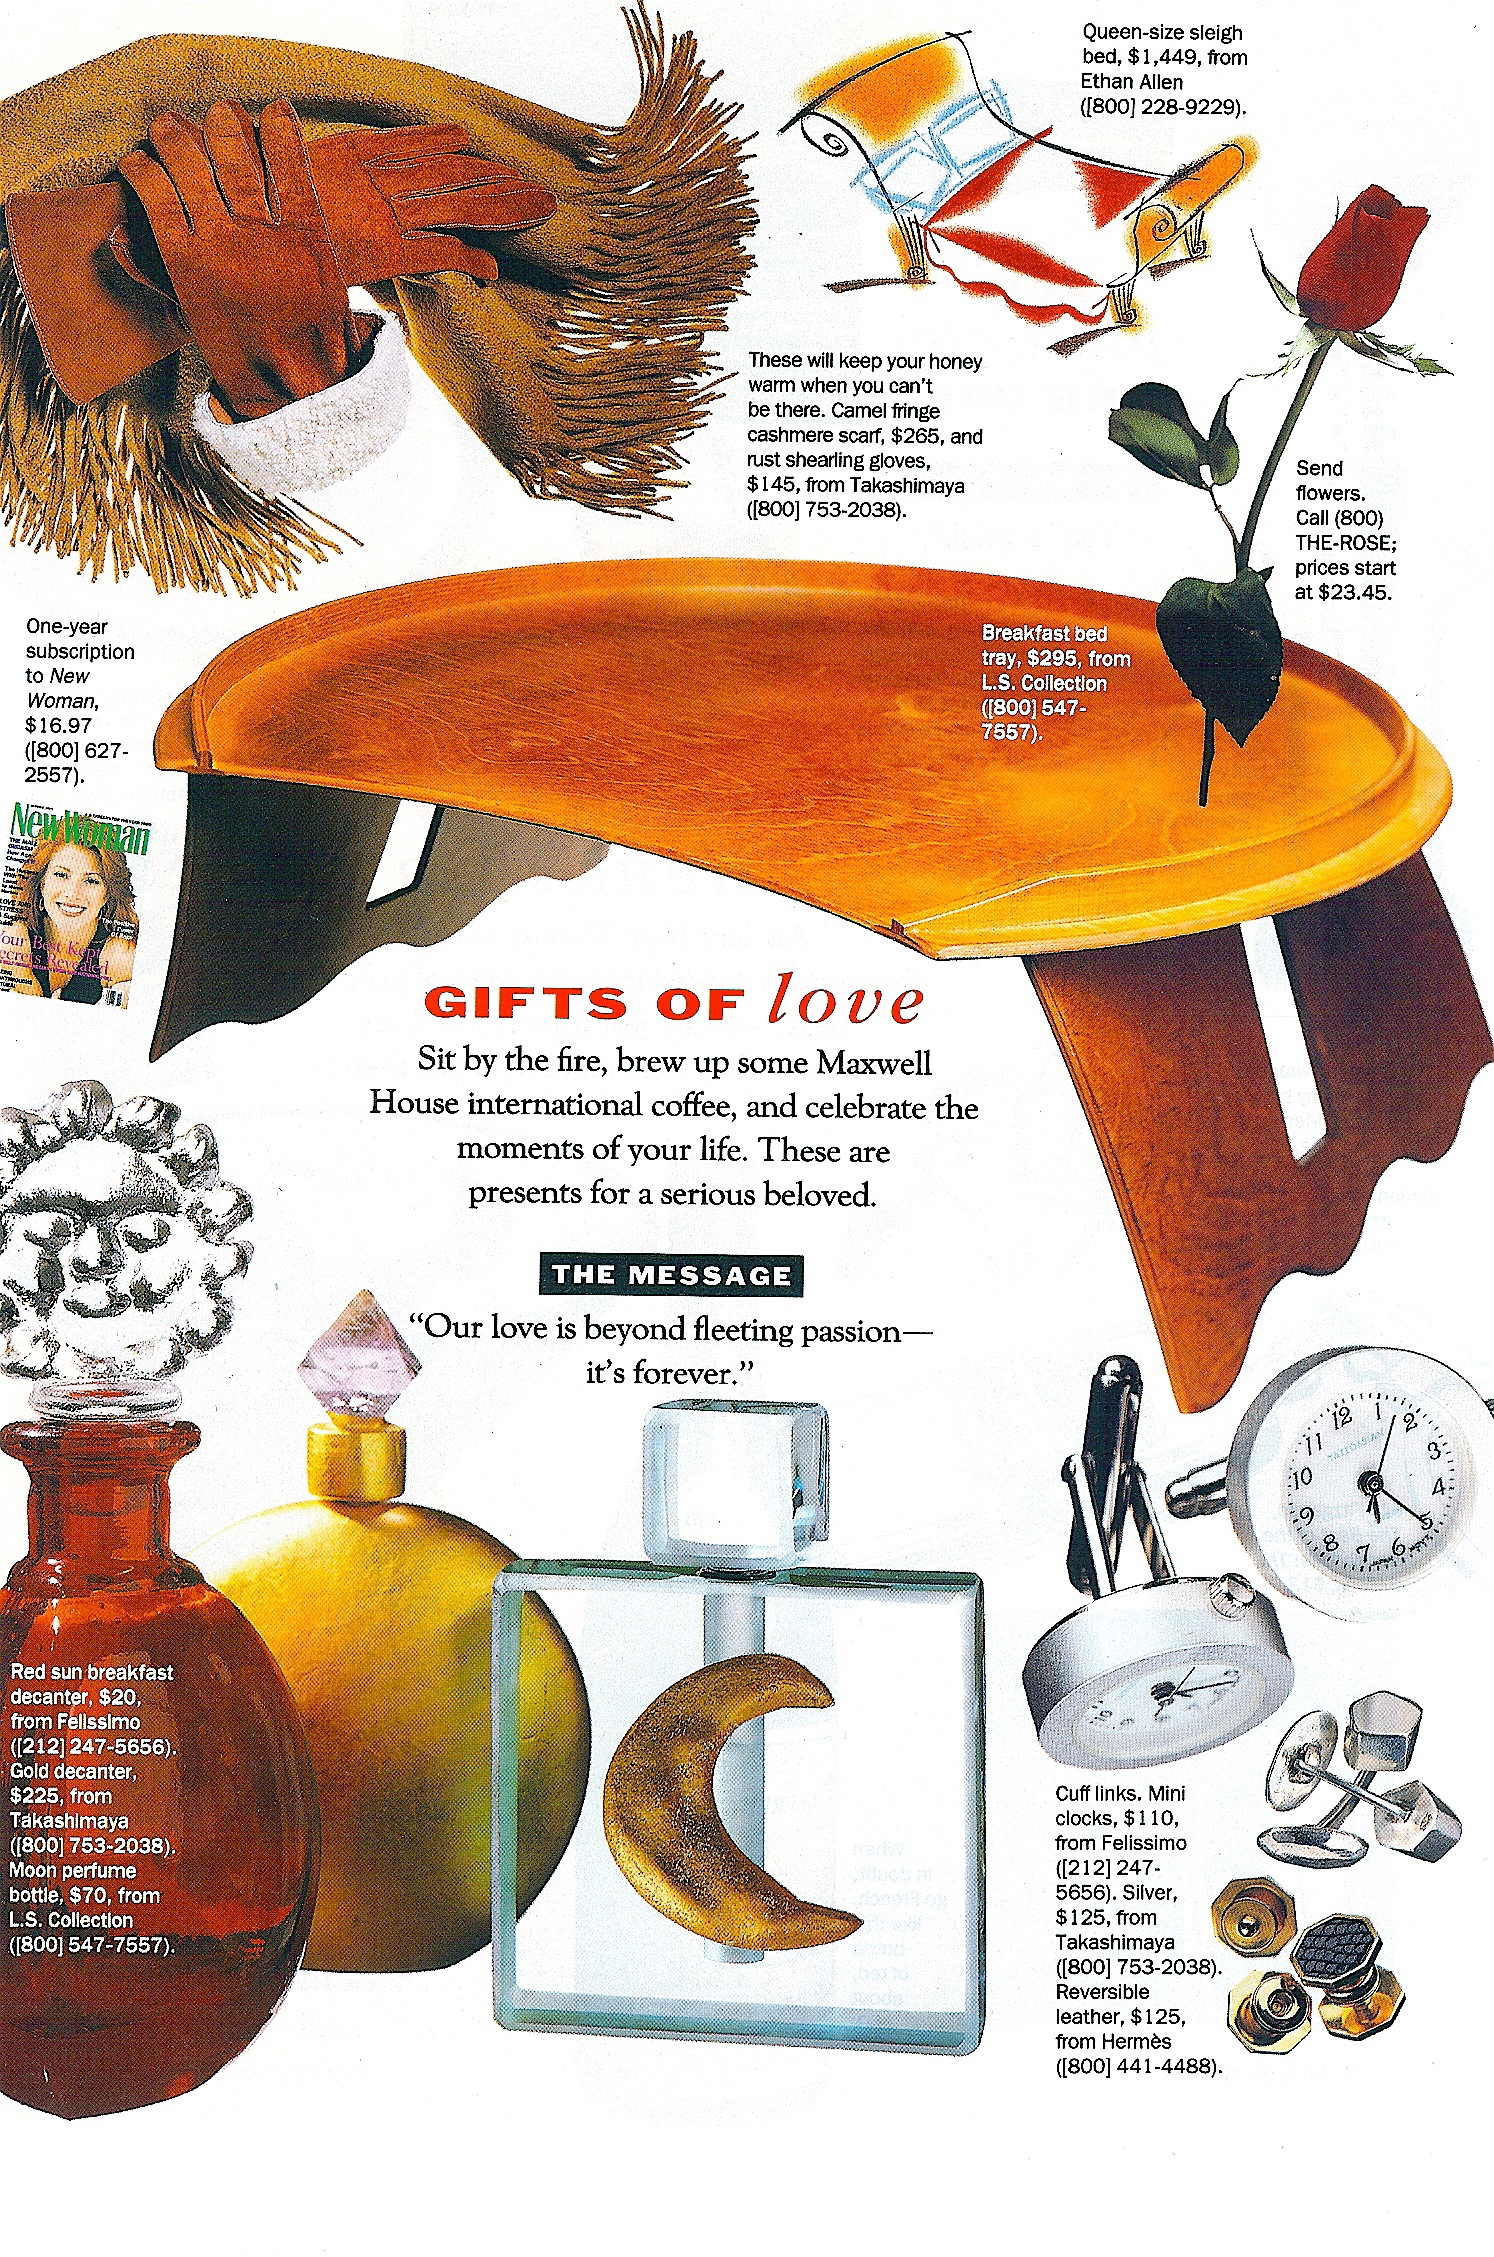 Coffin & King Press - Coffin & King Gilded Perfume Bottle with Crystal Finial featured in New Woman Magazine